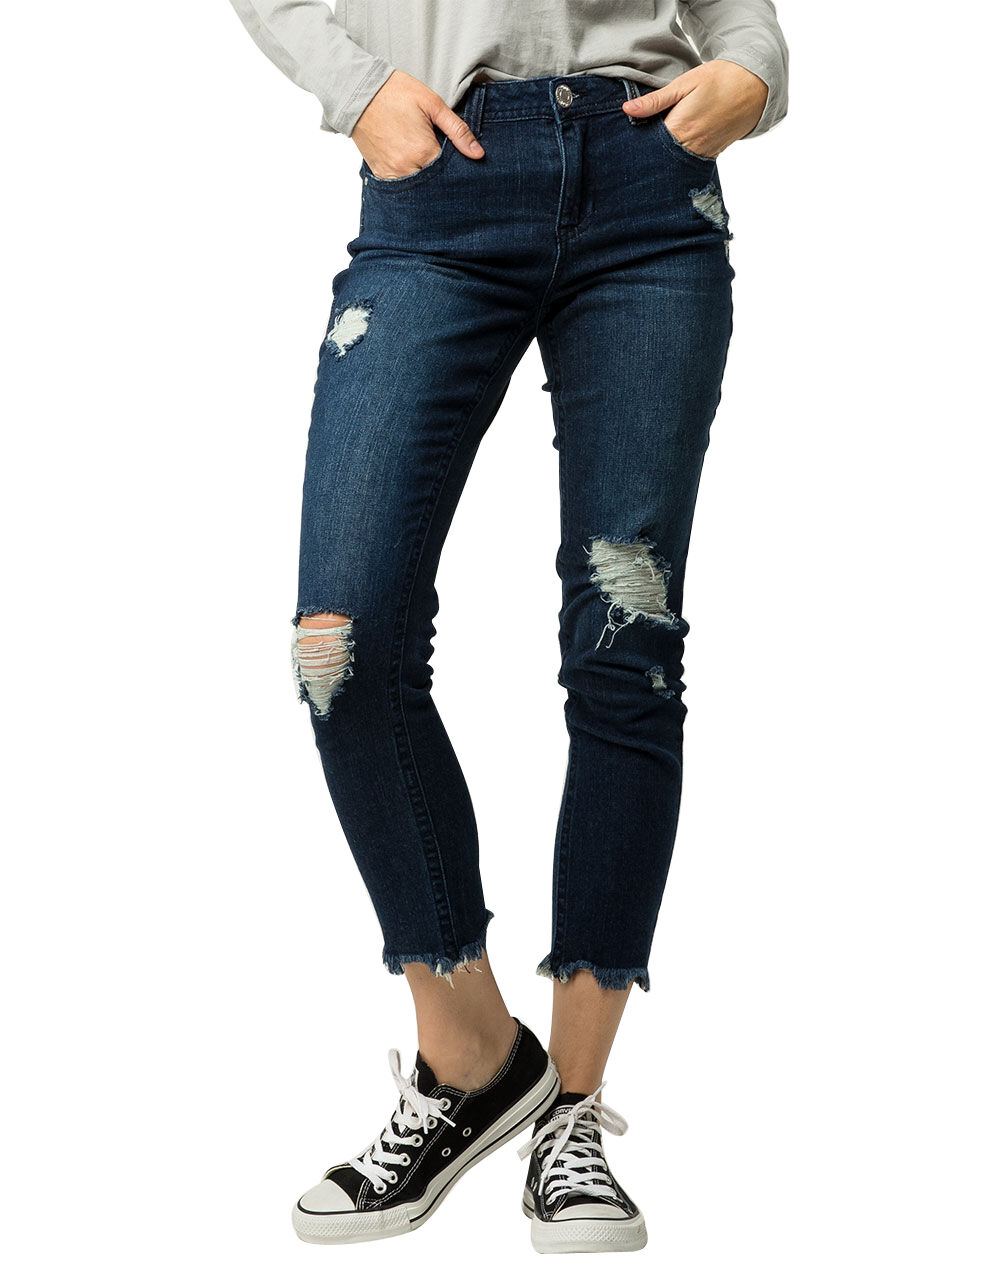 SKY AND SPARROW FRAY ANKLE RIPPED JEANS